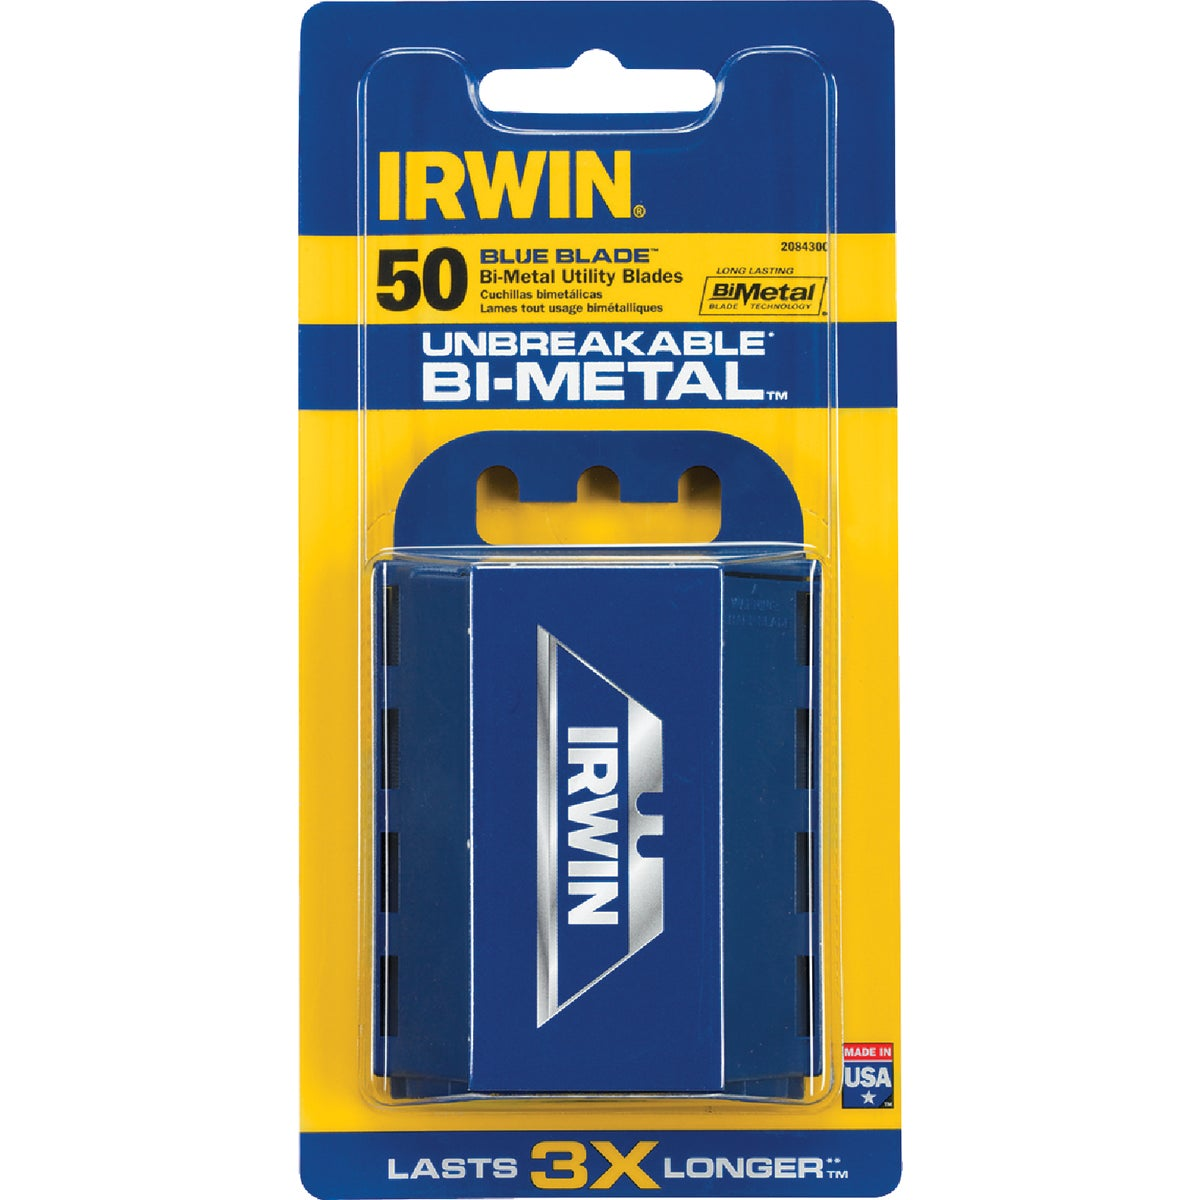 50 PACK BI-METAL BLADE - 2084300 by Irwin Industr Tool